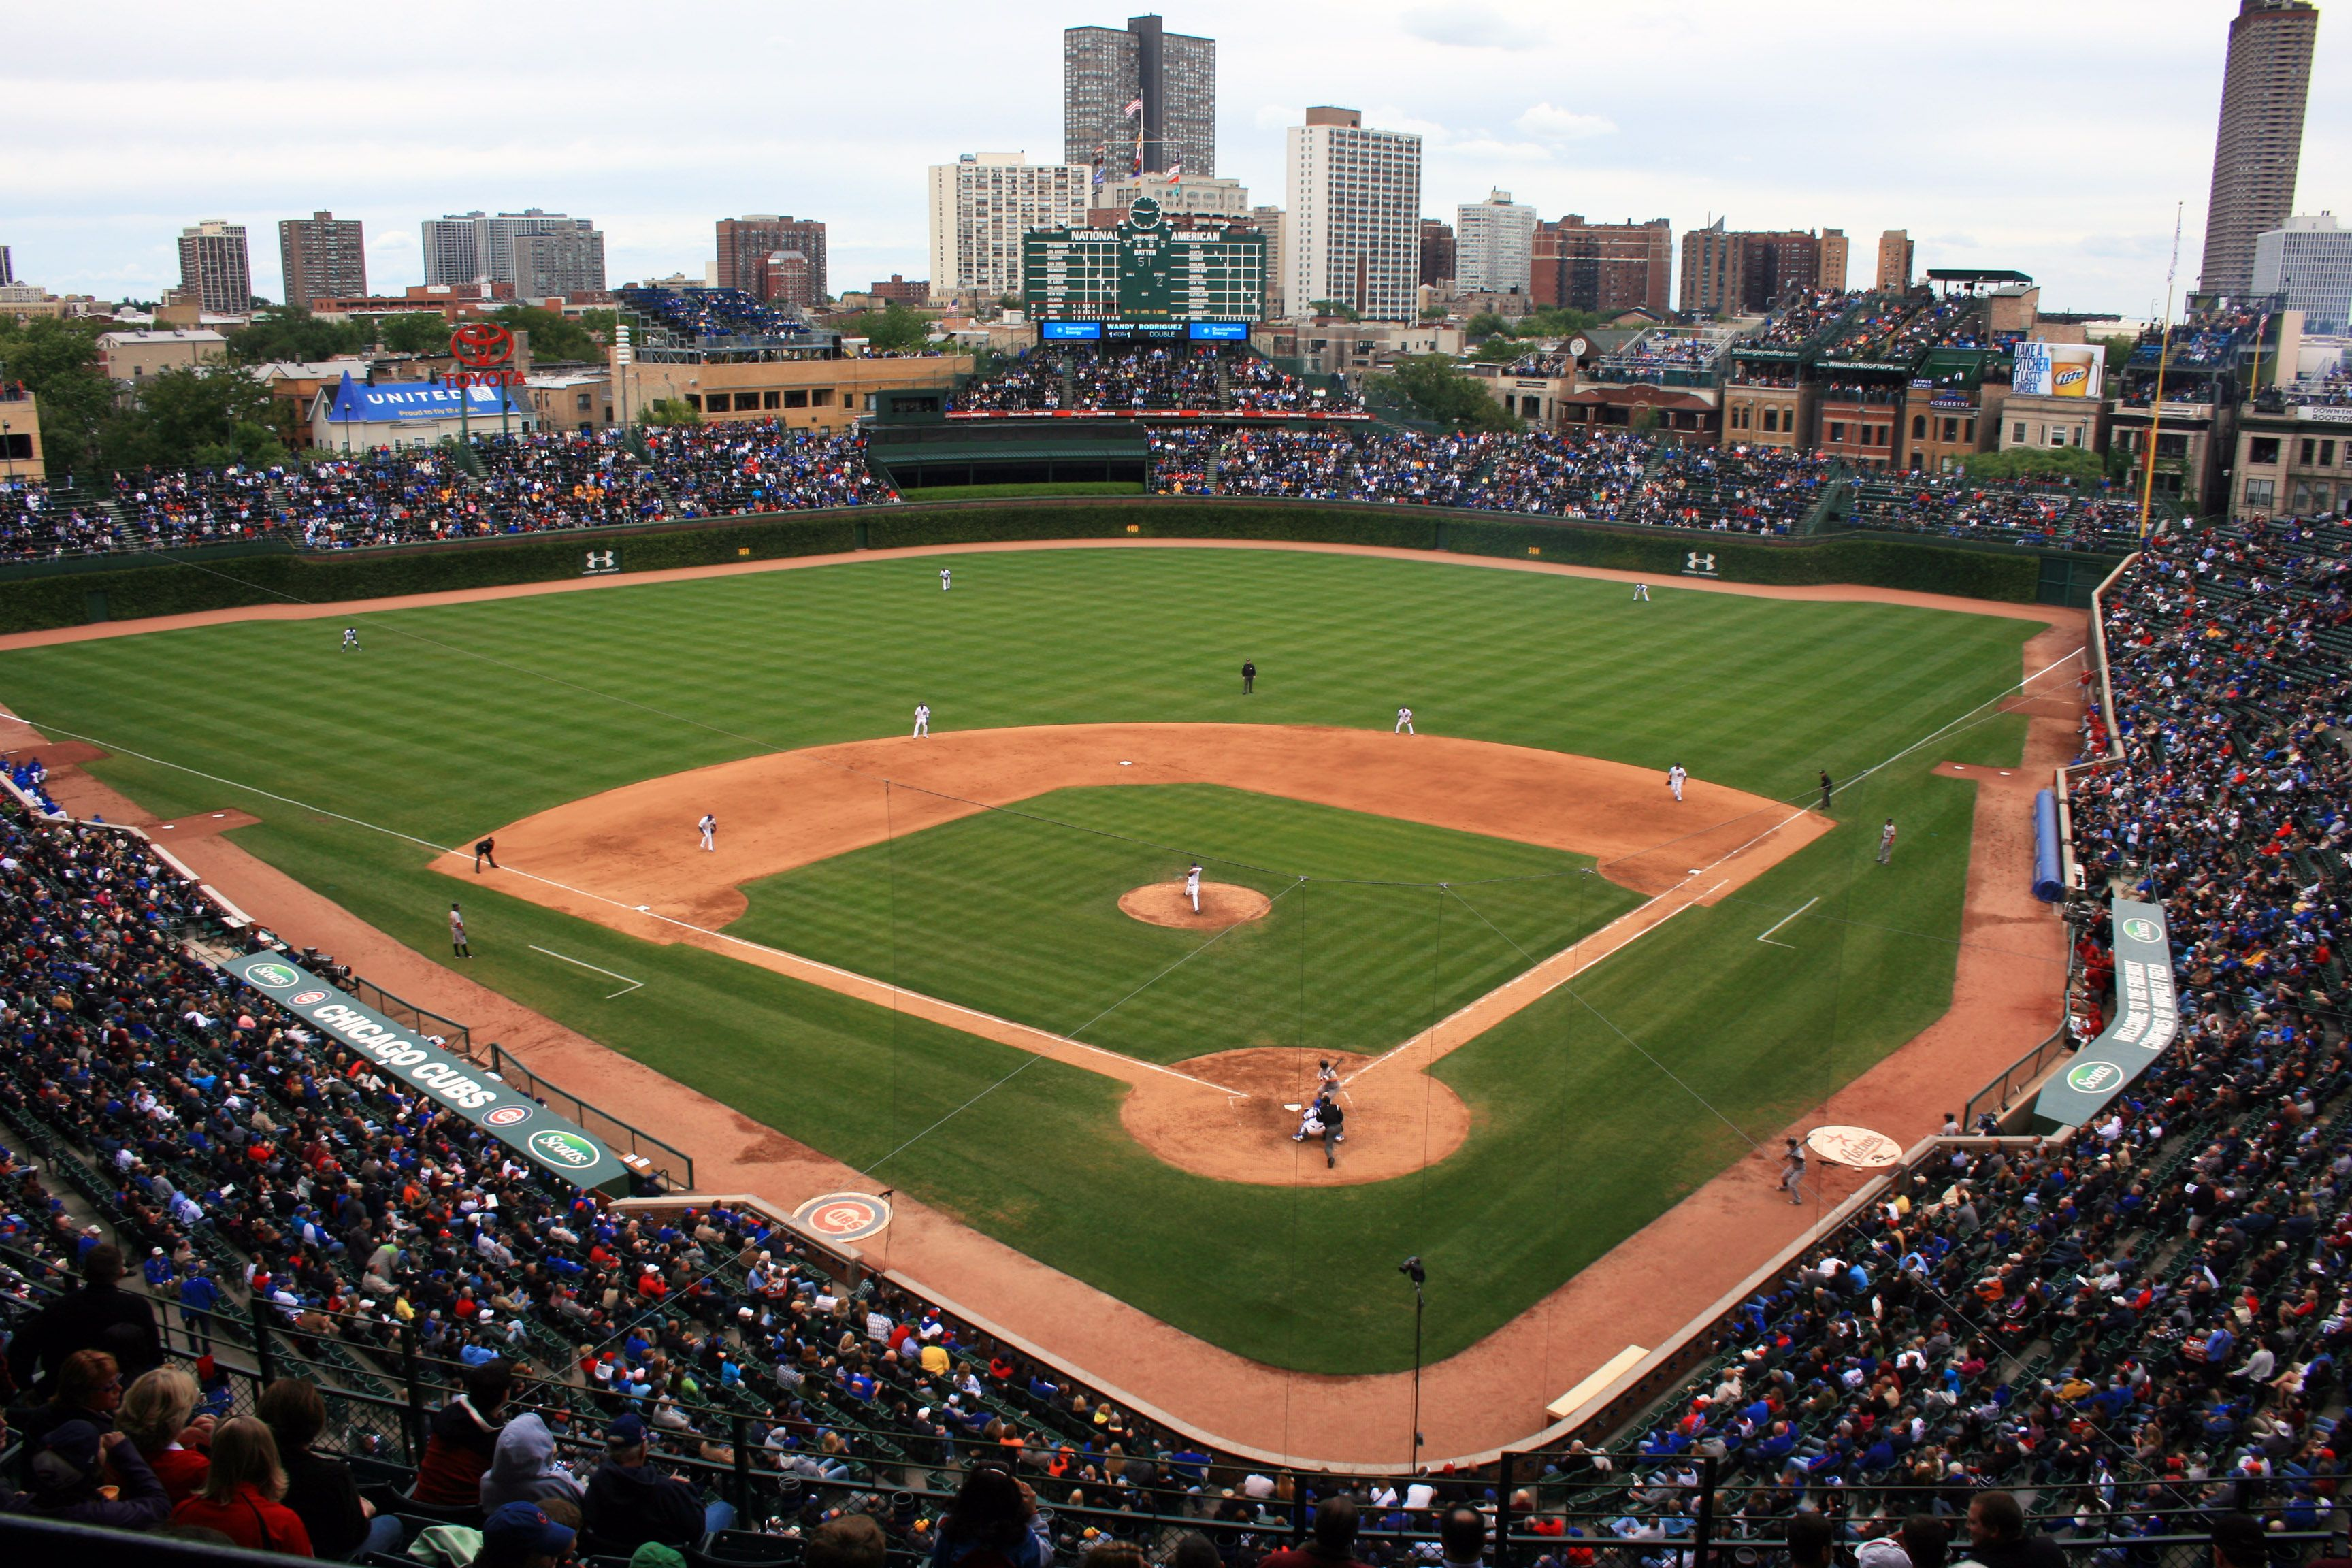 Wrigley Field Chicago Il Home Of The Chicago Cubs September 16 2011 Wrigleyfield